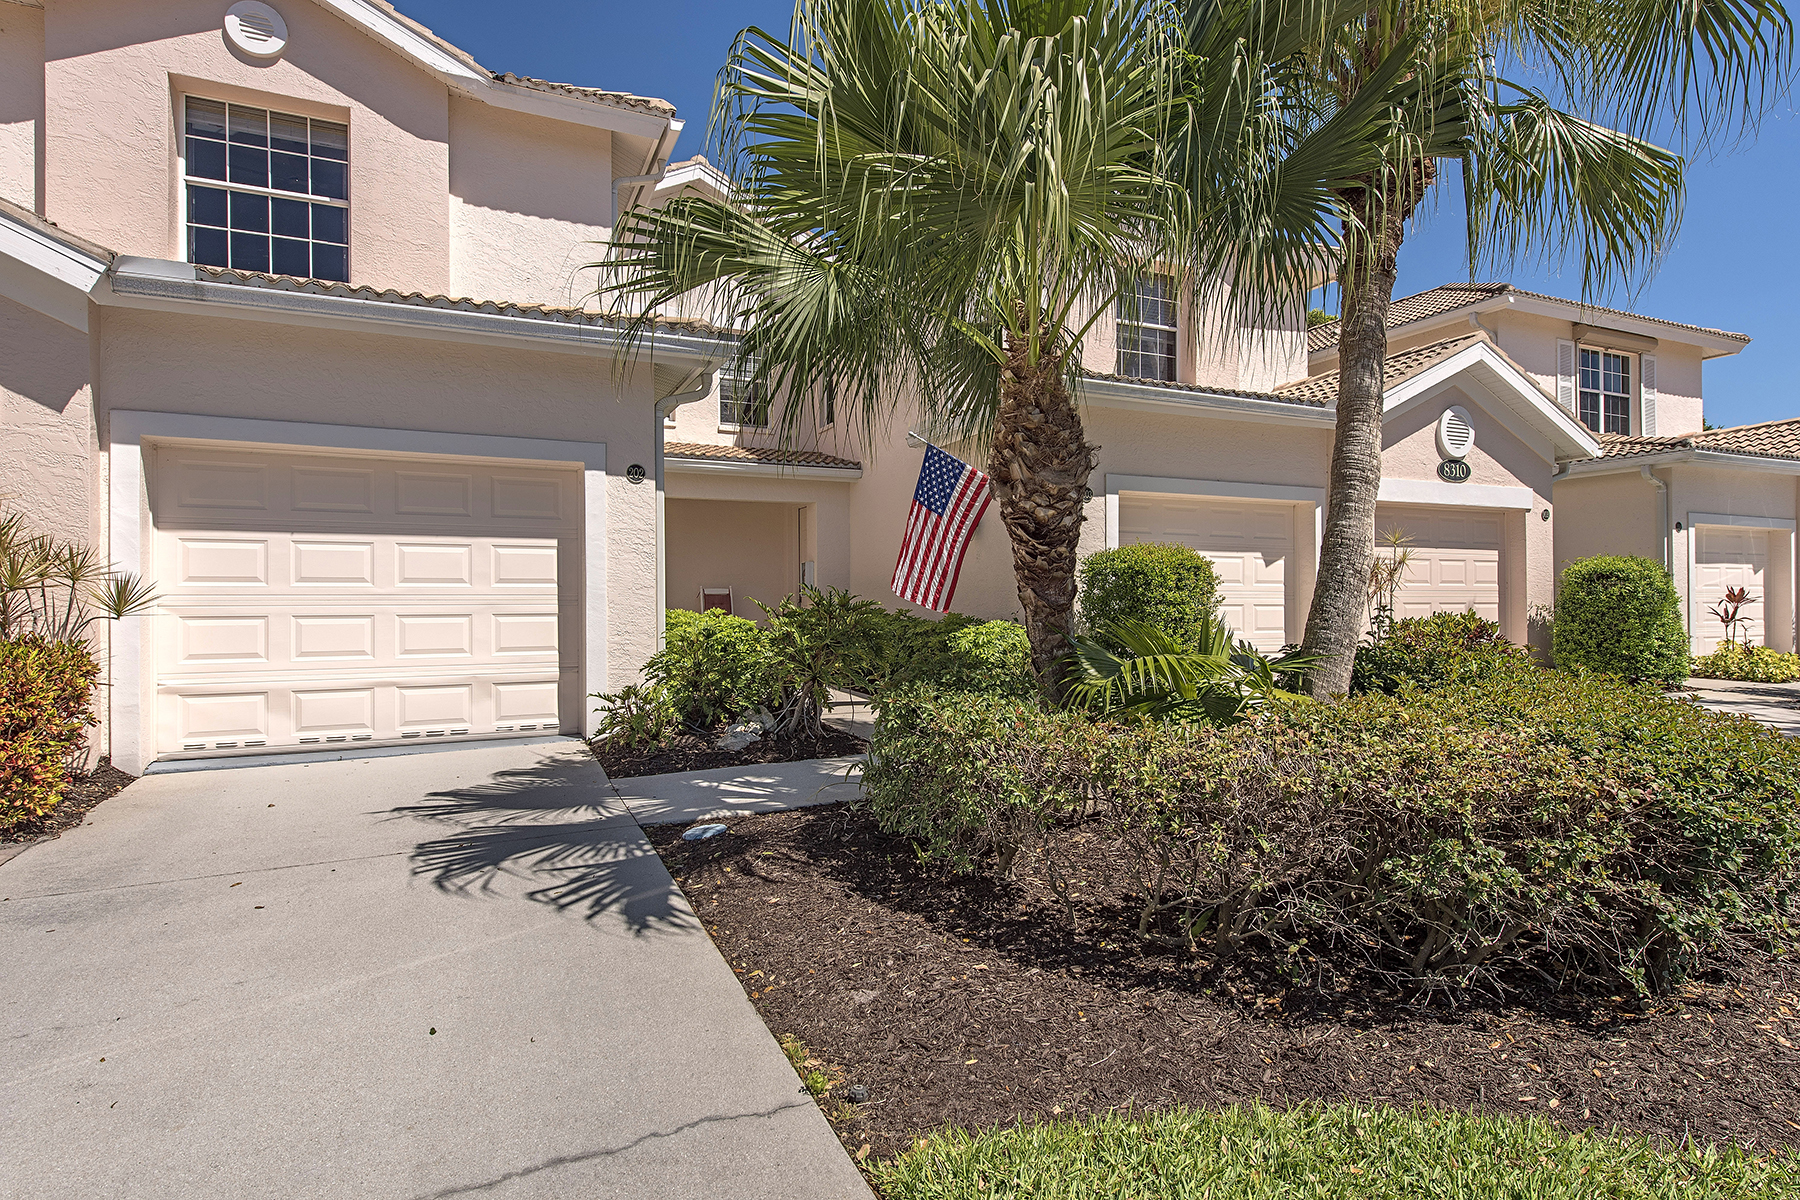 Condominium for Sale at 8310 Whisper Trace Way , 202, Naples, FL 34114 8310 Whisper Trace Way 202, Naples, Florida, 34114 United States